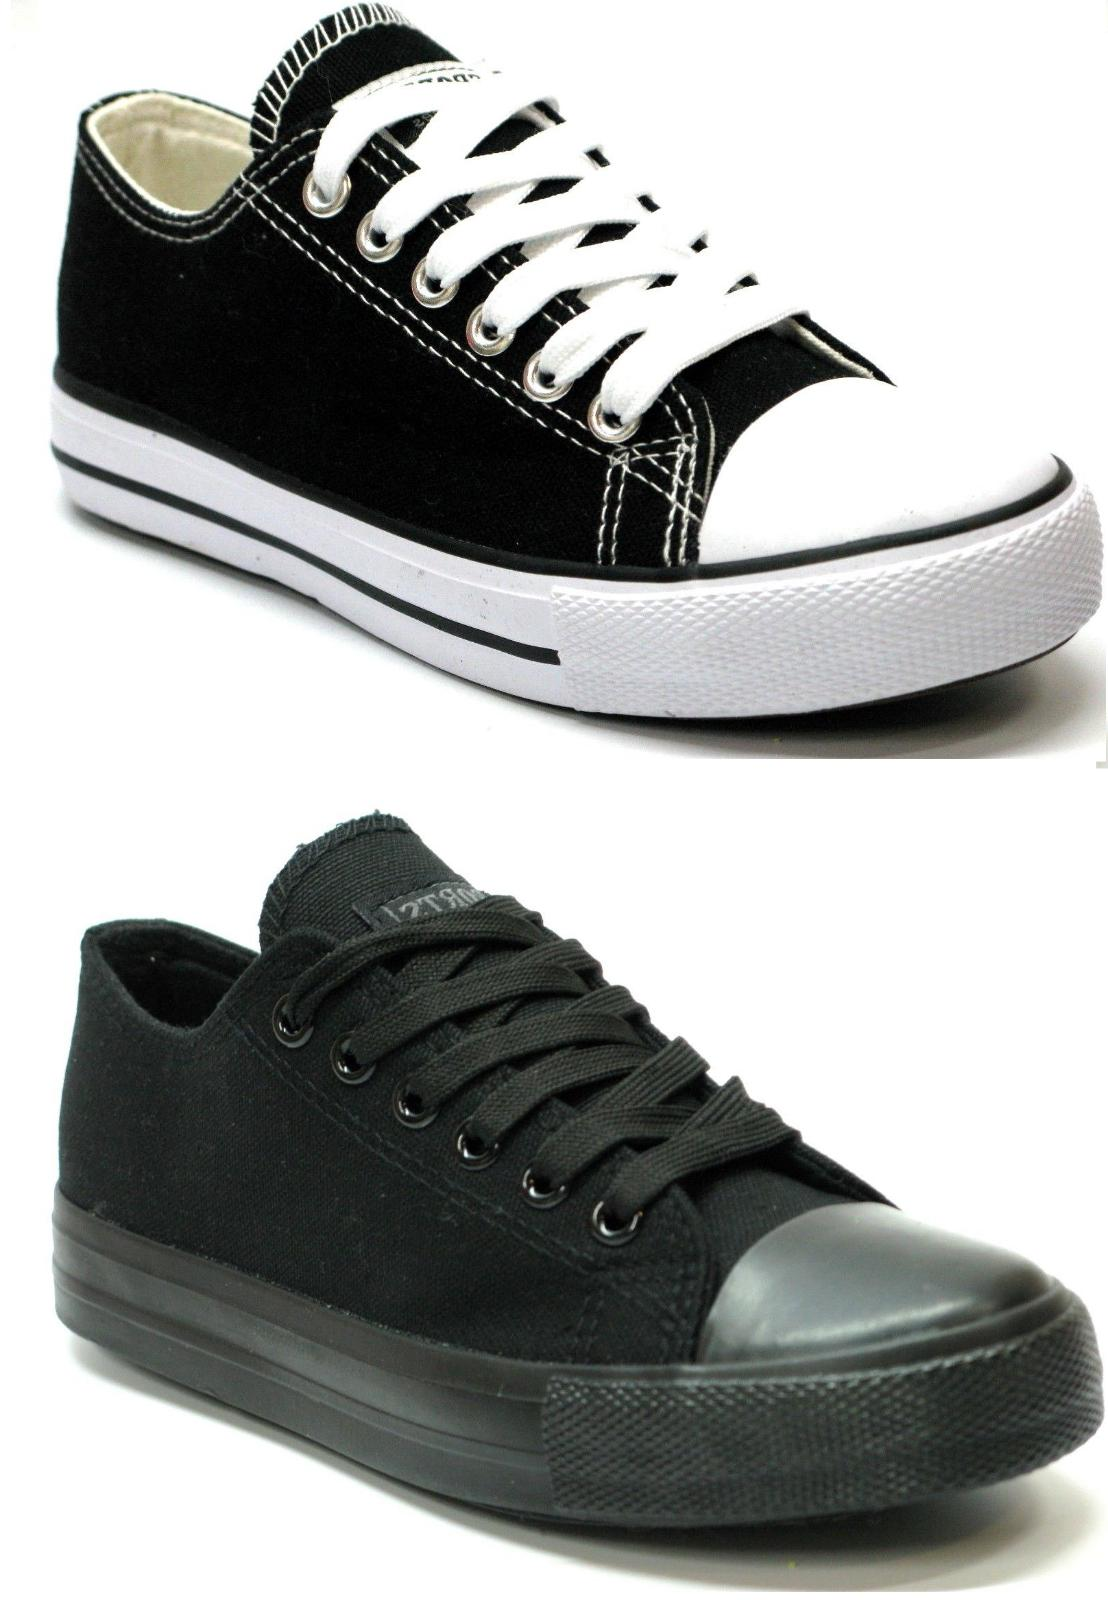 New Mens Up Sneakers 7-12